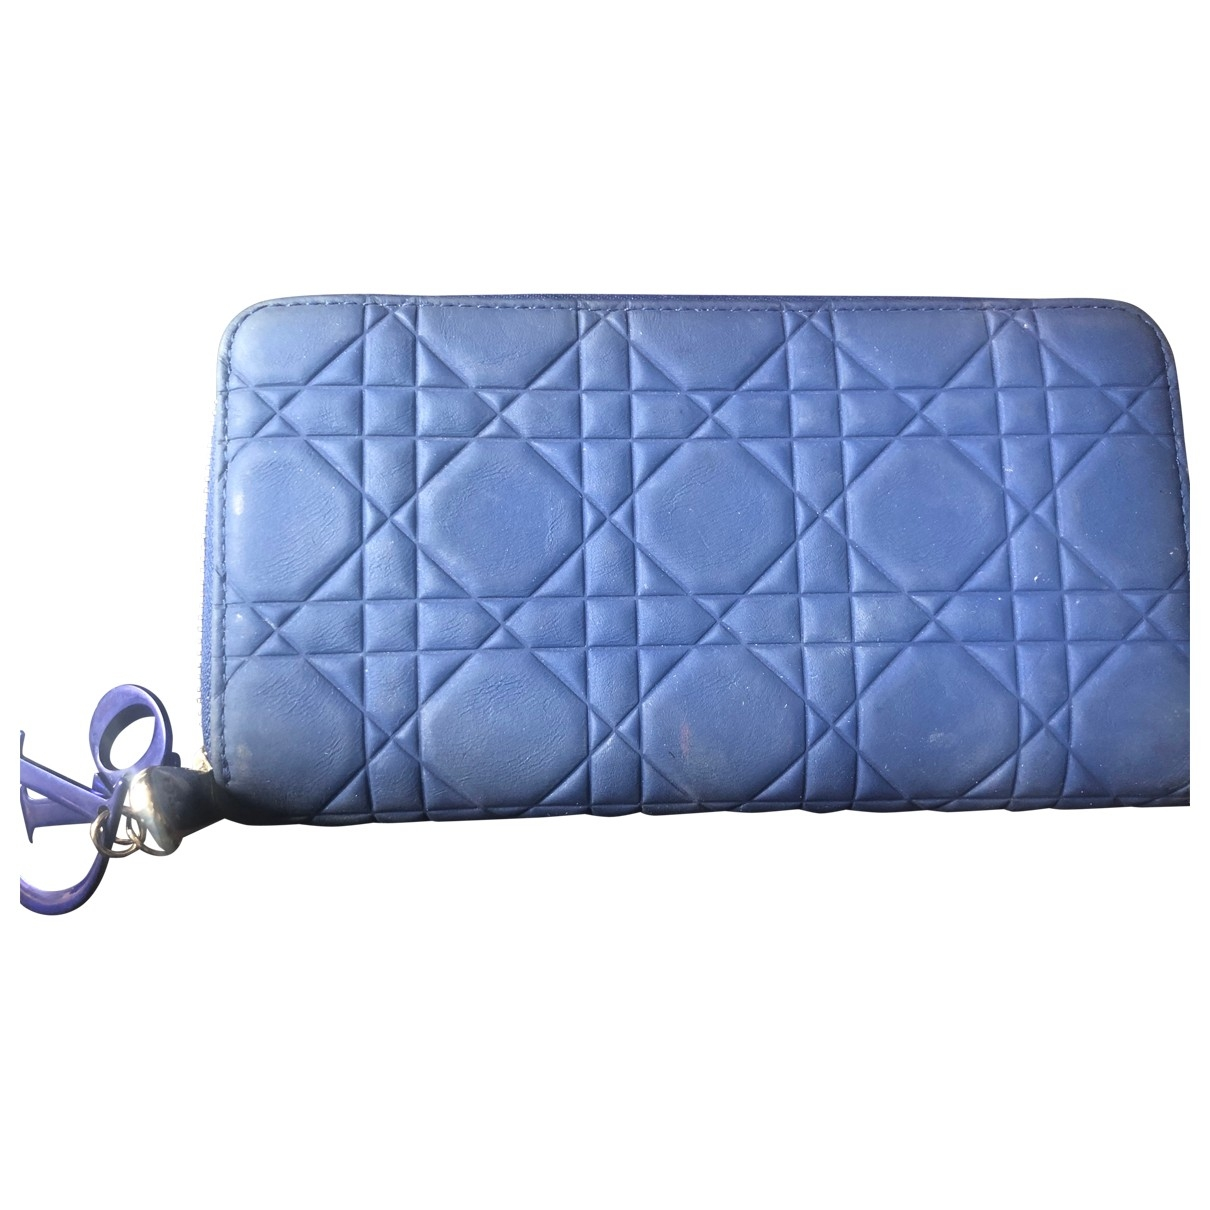 Dior Lady Dior Blue Leather wallet for Women \N